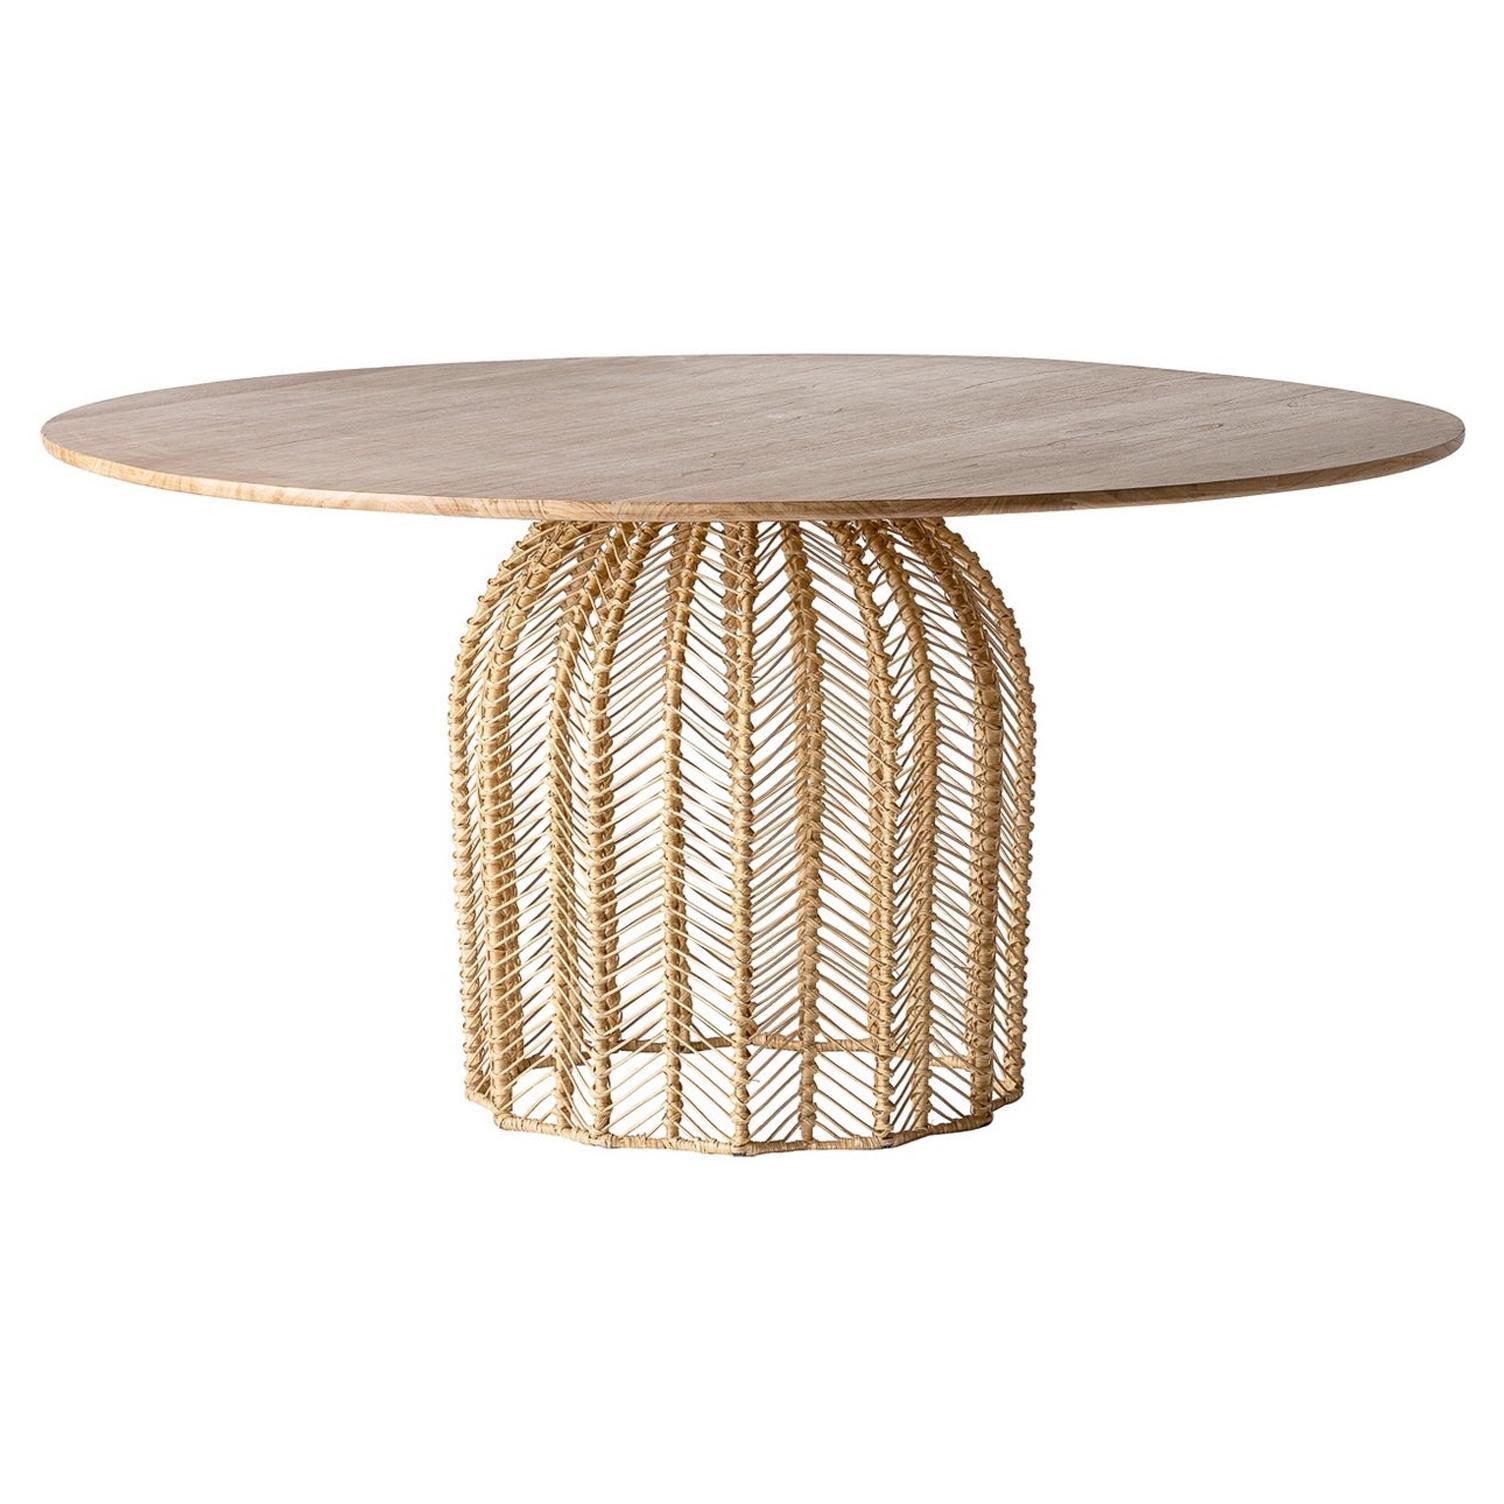 1970s Design Style Round Rattan Wicker Cane And Wooden Dining Pedestal Table